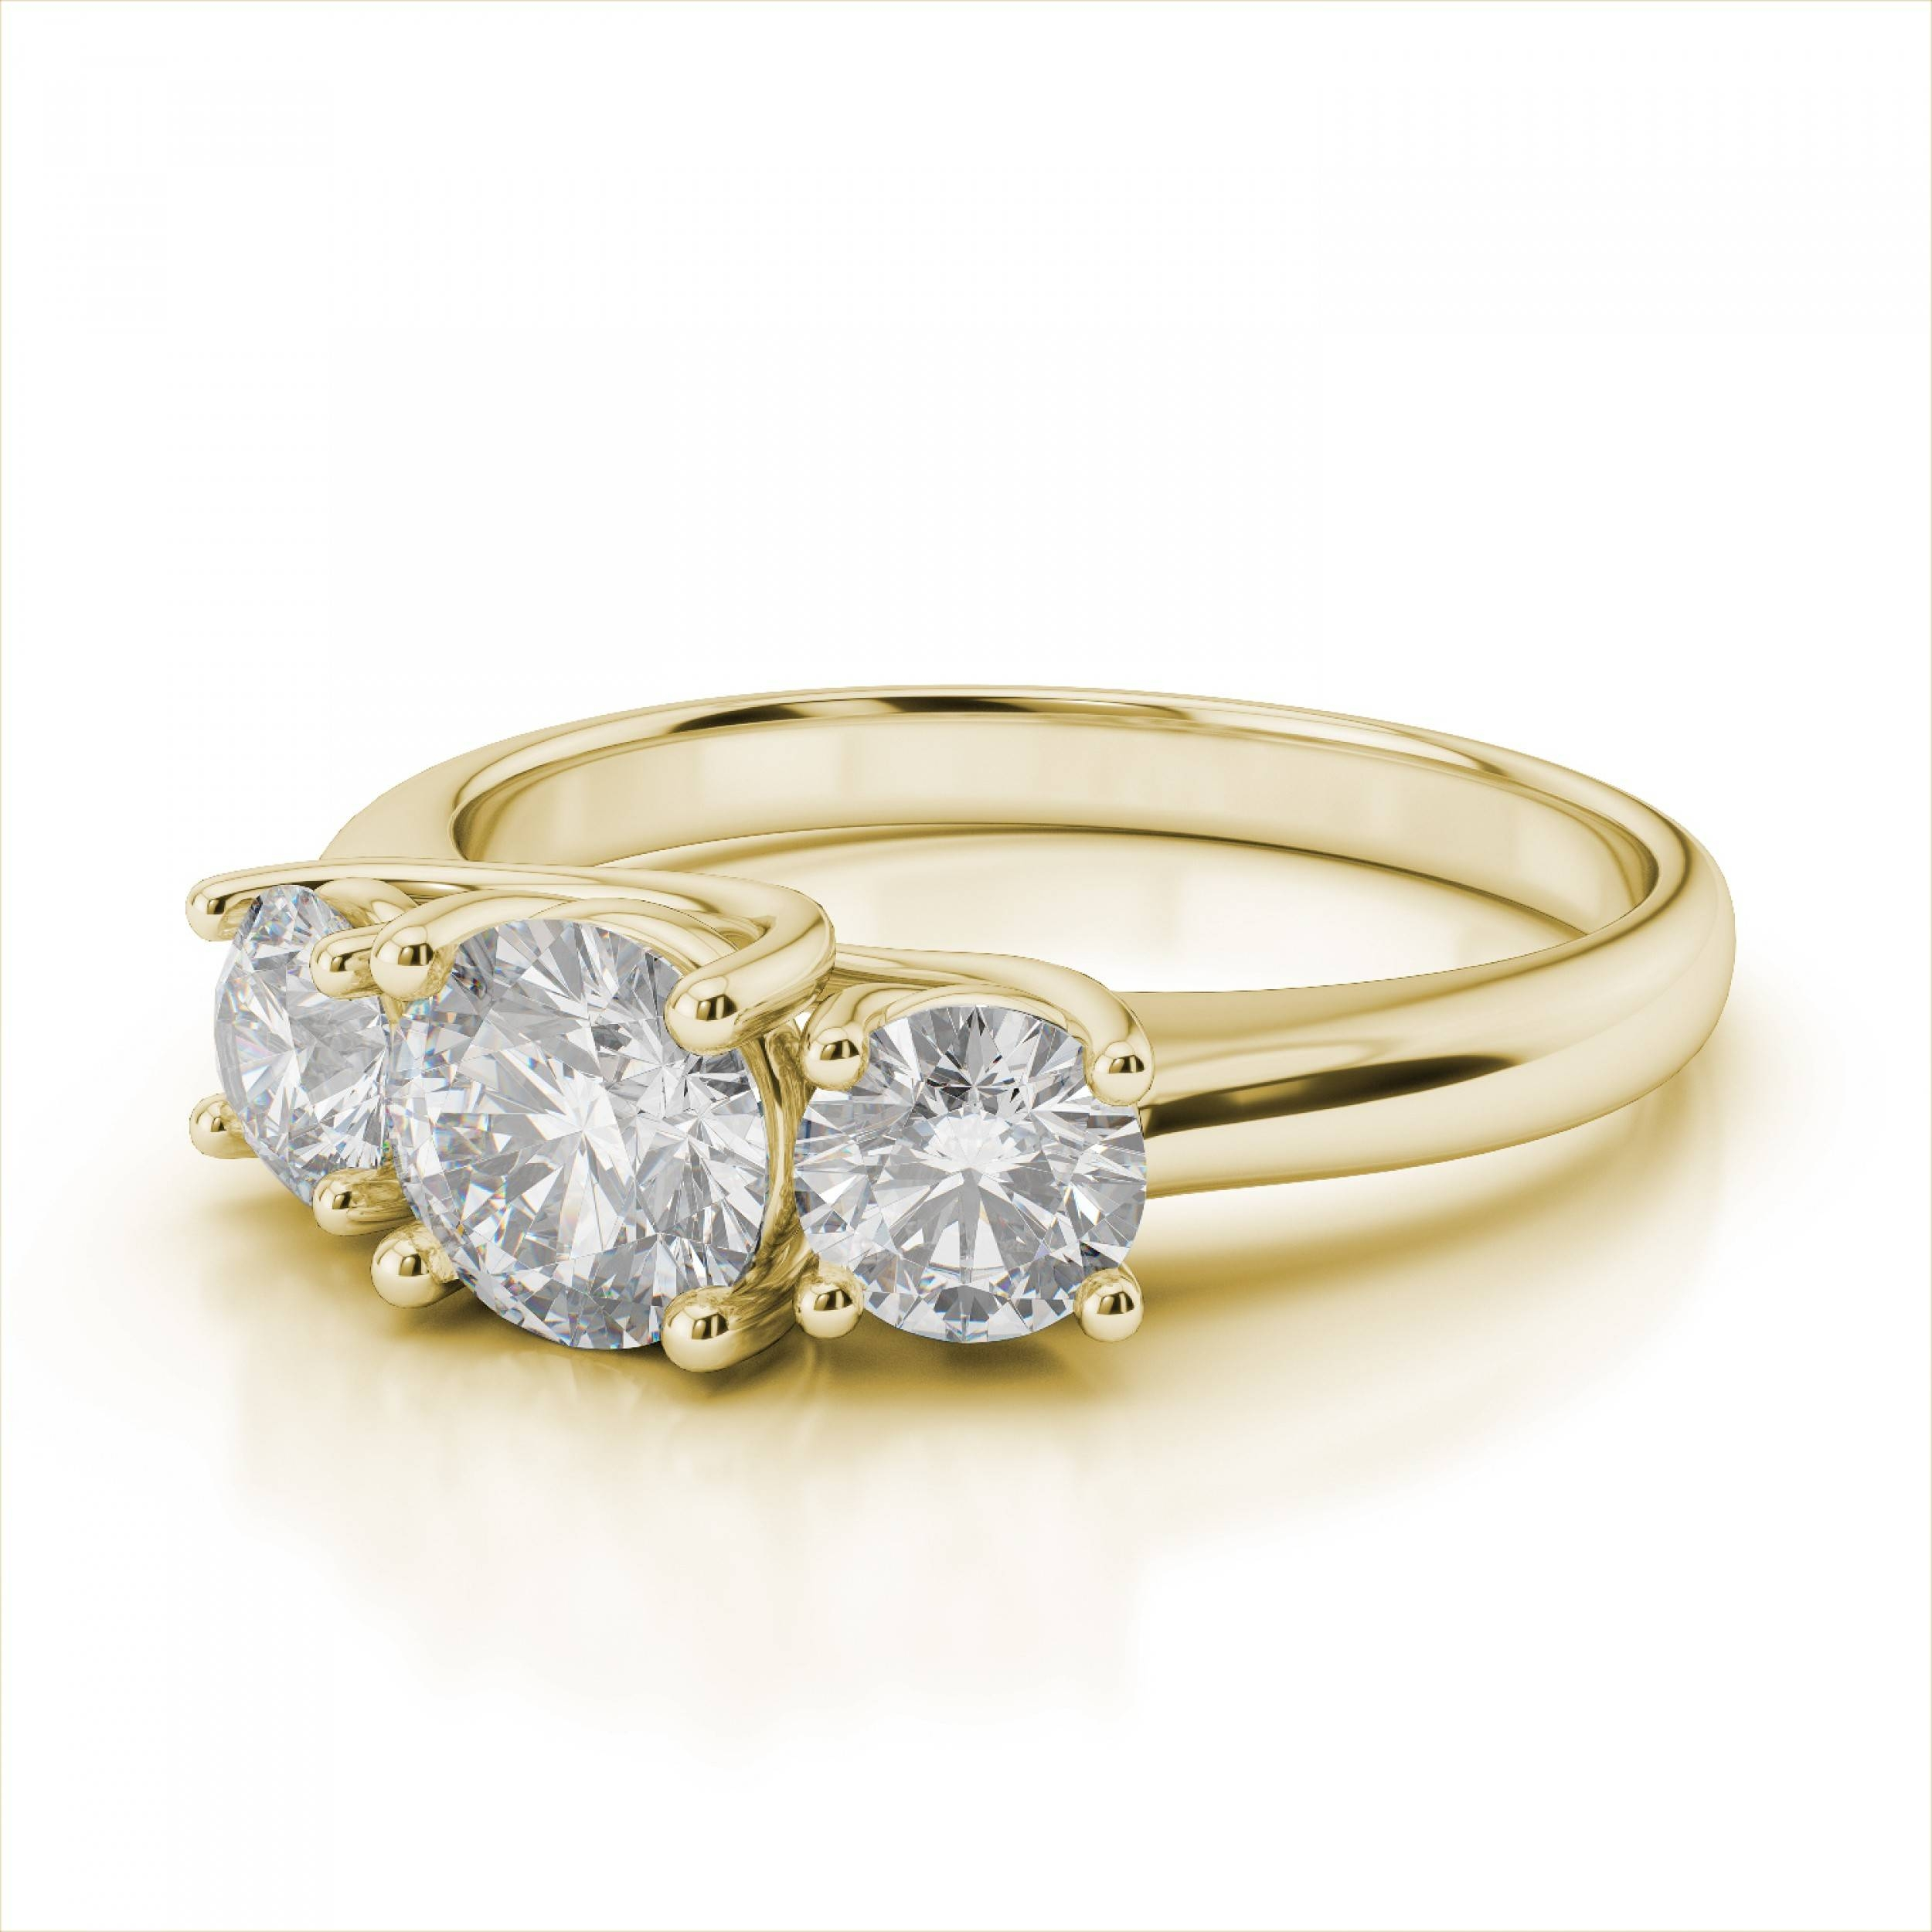 Stone Diamond Trellis Engagement Ring In 18K Yellow Gold With Engagement Rings 18K Yellow Gold (View 13 of 15)